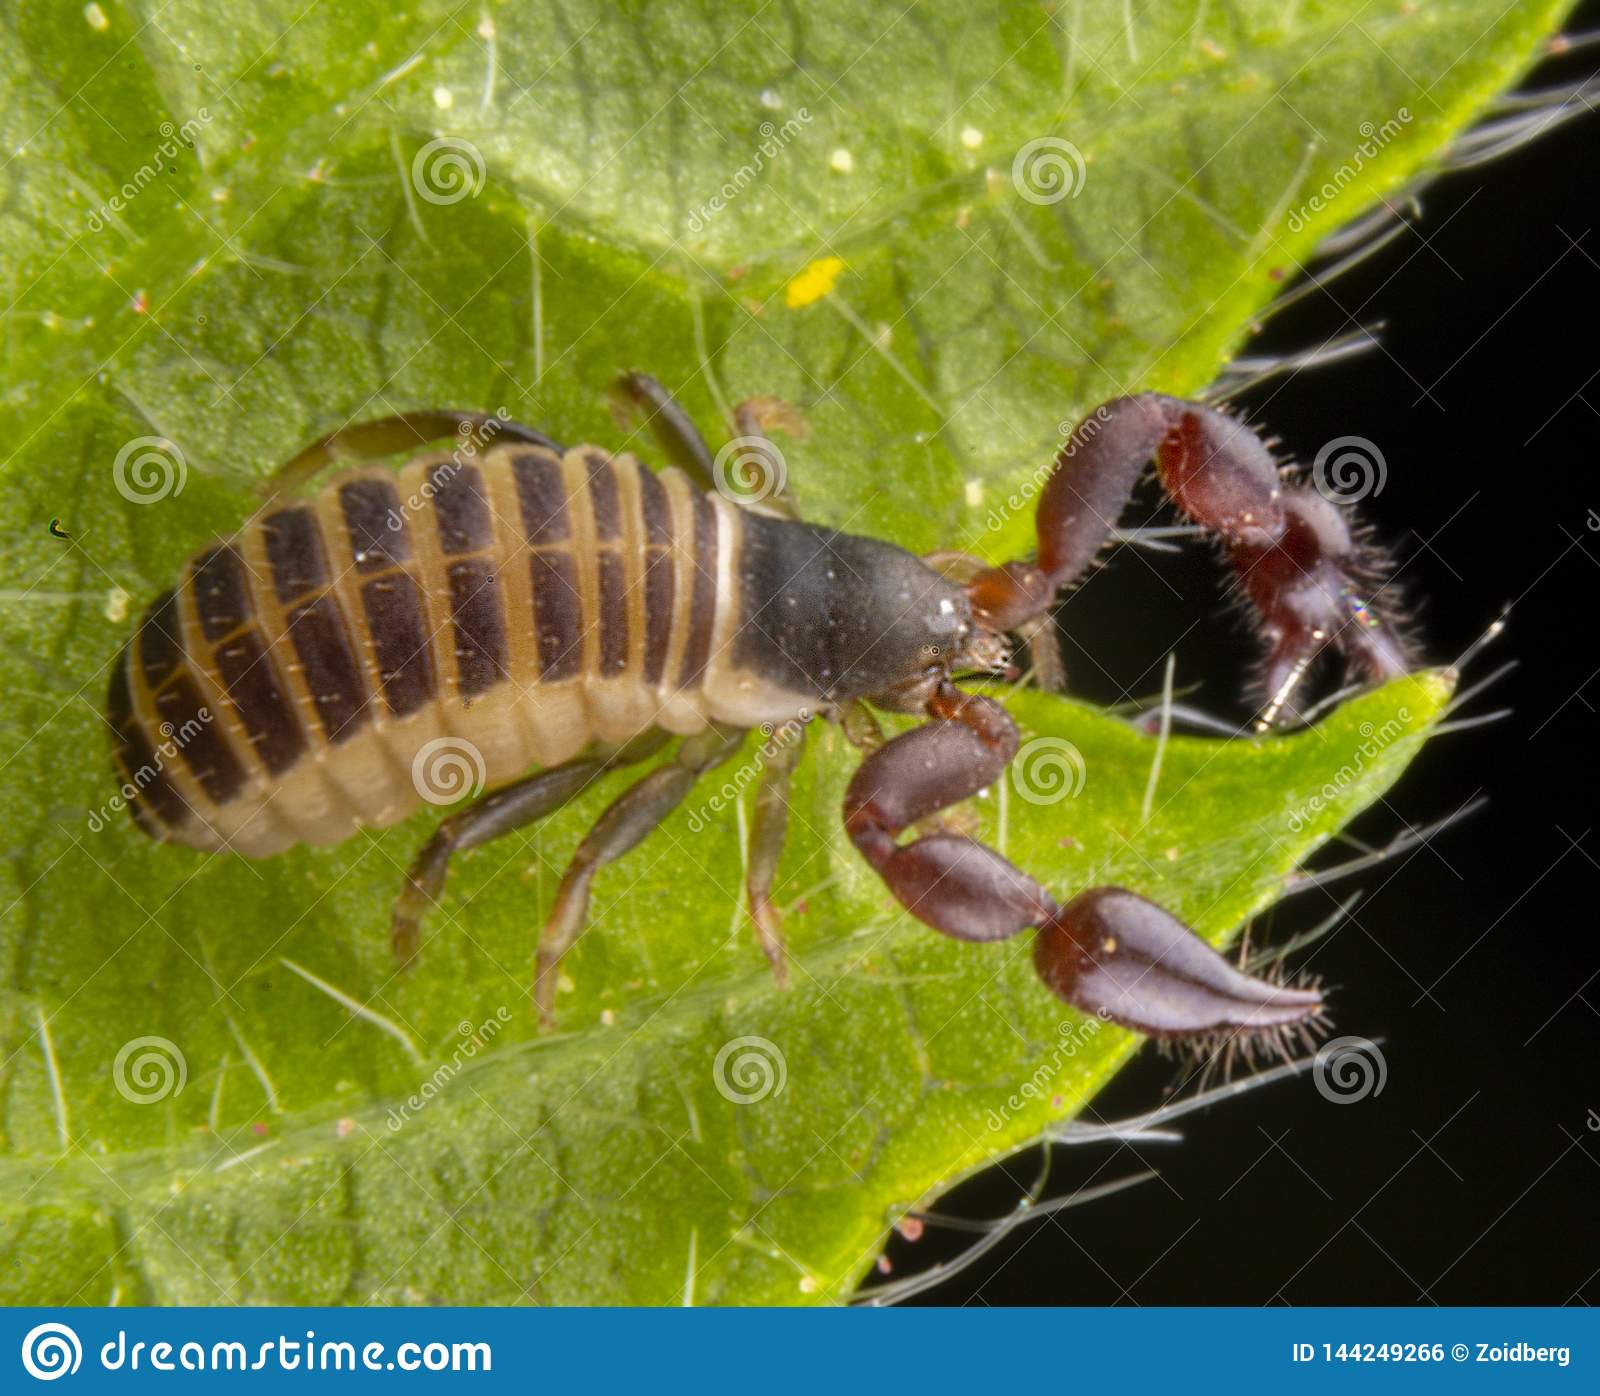 Baby pseudo scorpion posing on a green leave